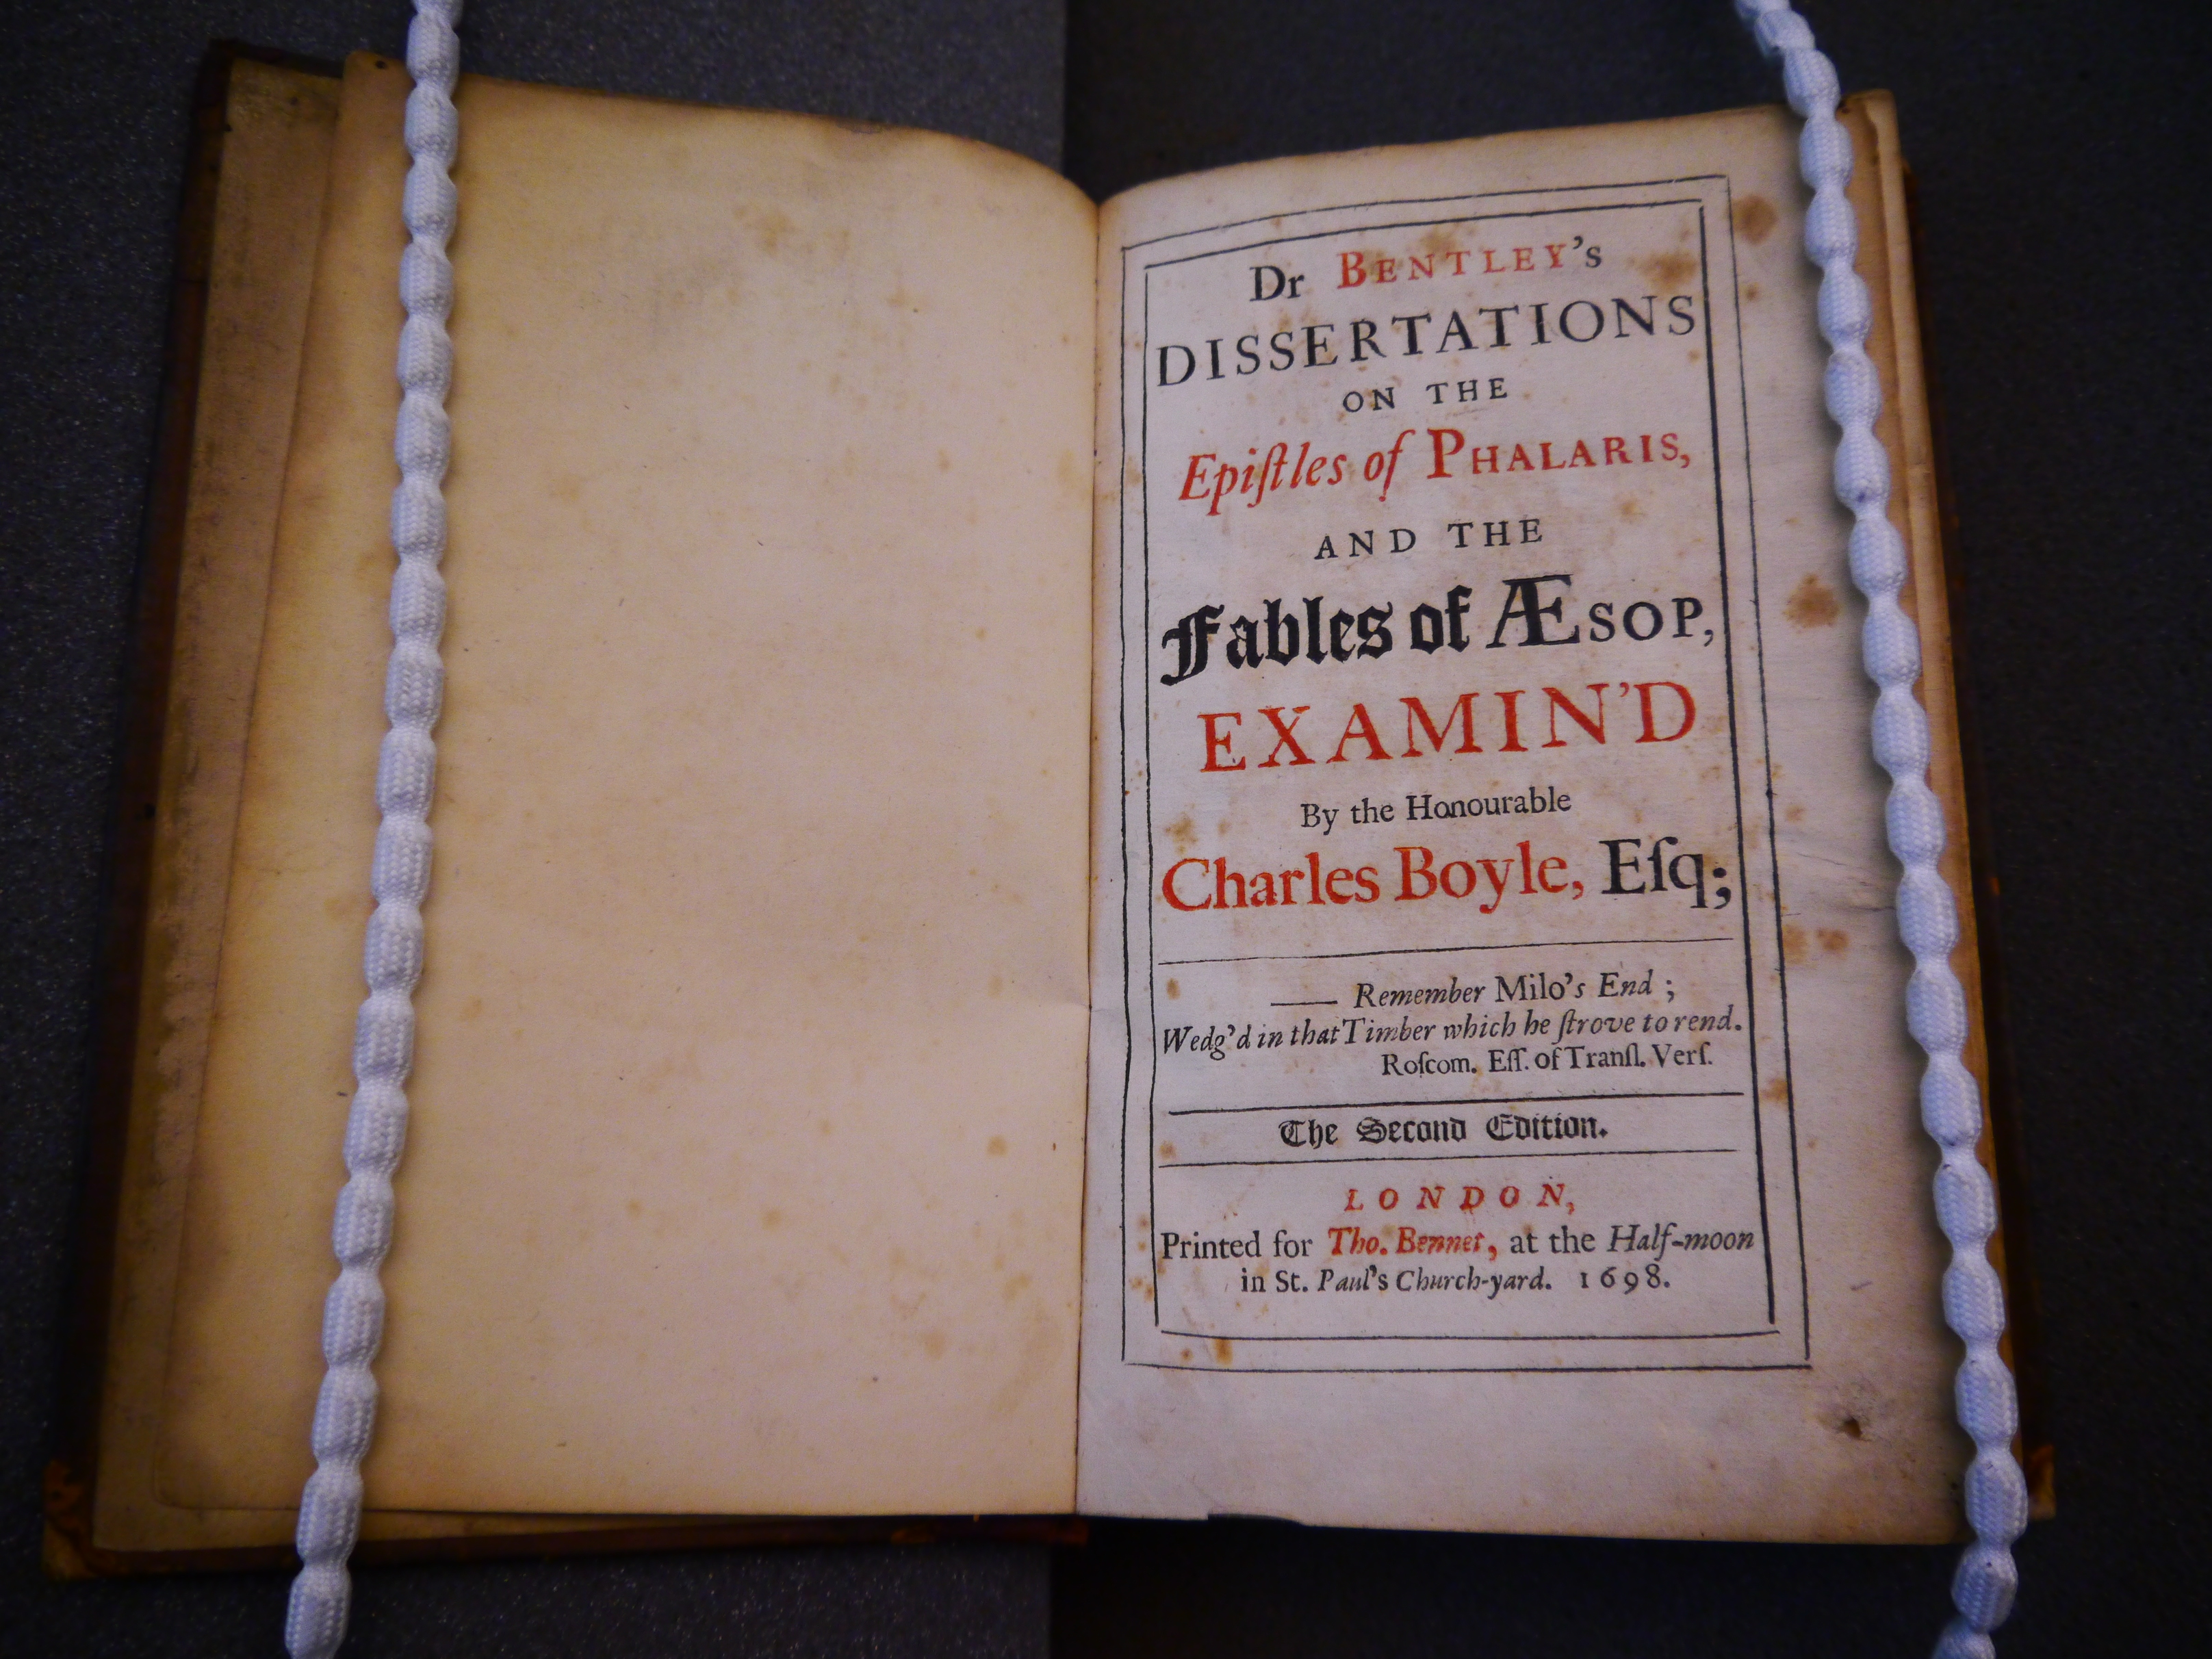 a dissertation upon the epistles of phalaris Boyle (henceforth 'orrery') succeeded as 4th earl on the death of his brother in  1703 between  phd dissertation  university of  dr bentley's dissertations  on the epistles of phalaris, and the fables of æsop, examin'd, to the master of.